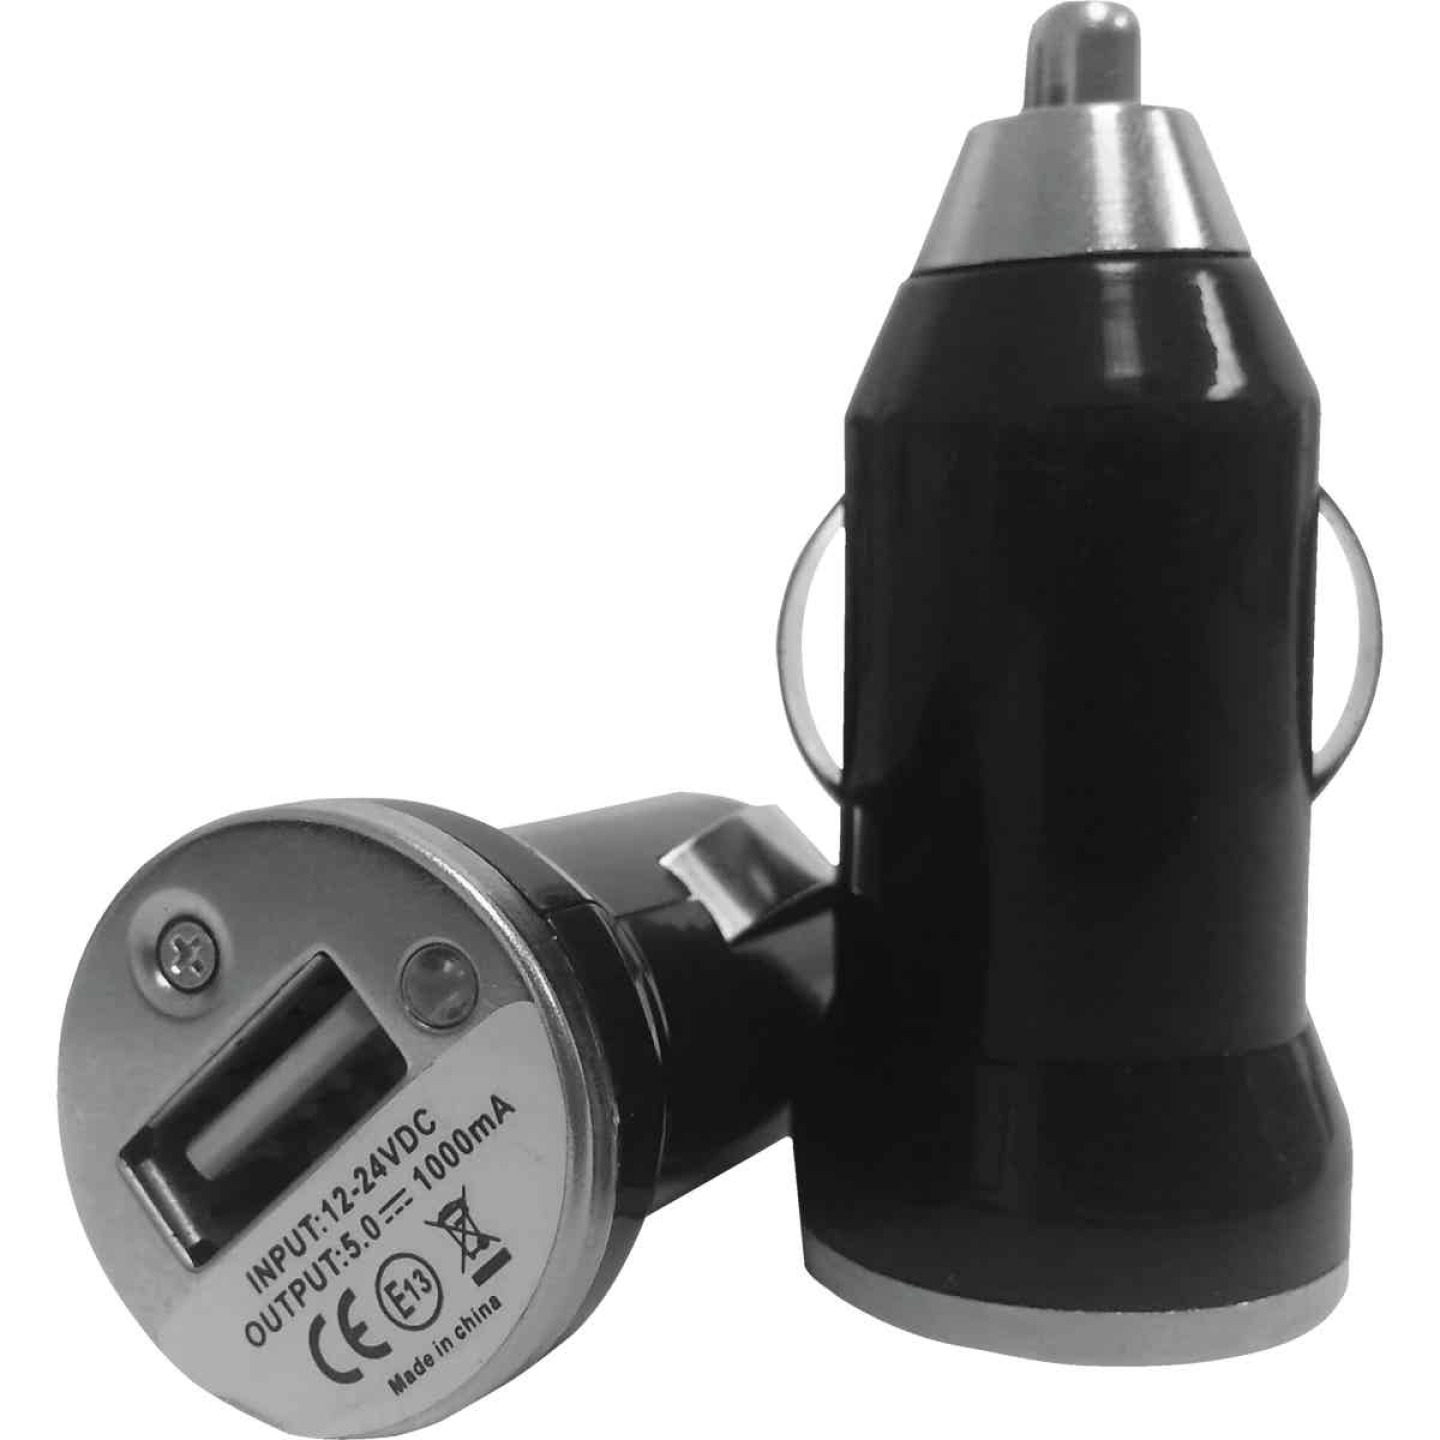 GetPower 12V USB Car Charger Image 1